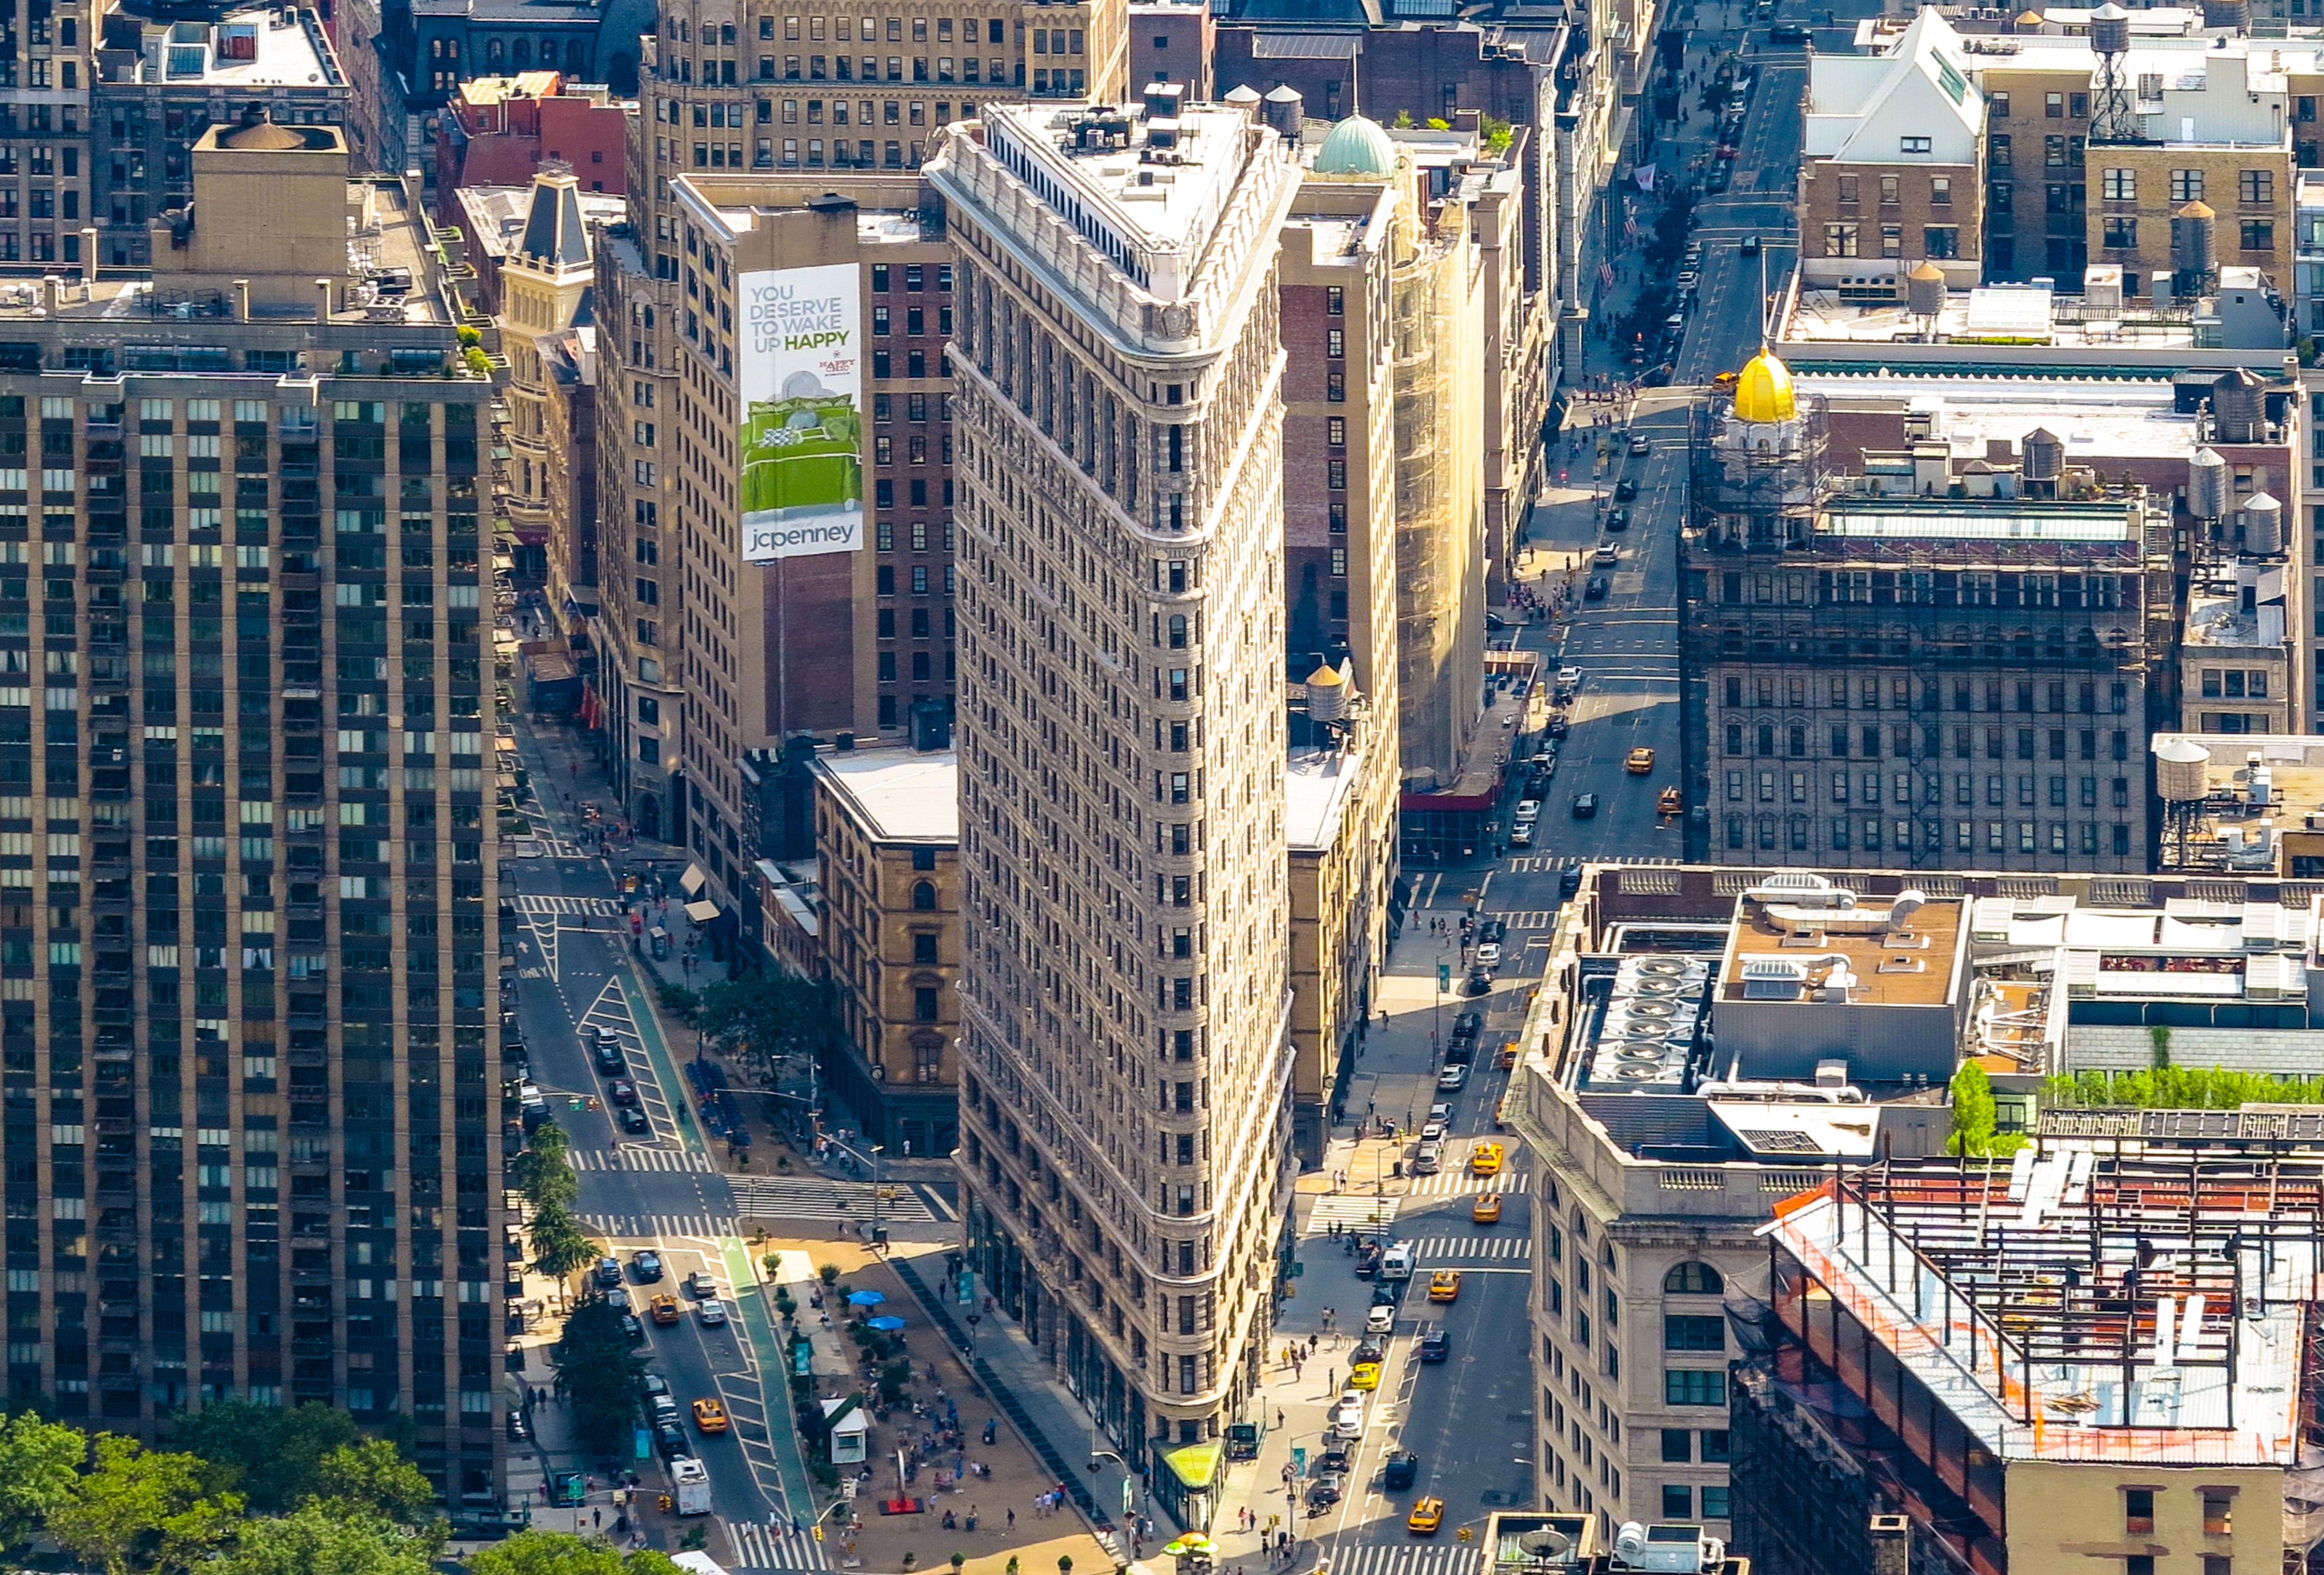 Aerial Photo of Buildings, Aerial, Office, Travel, Traffic, HQ Photo